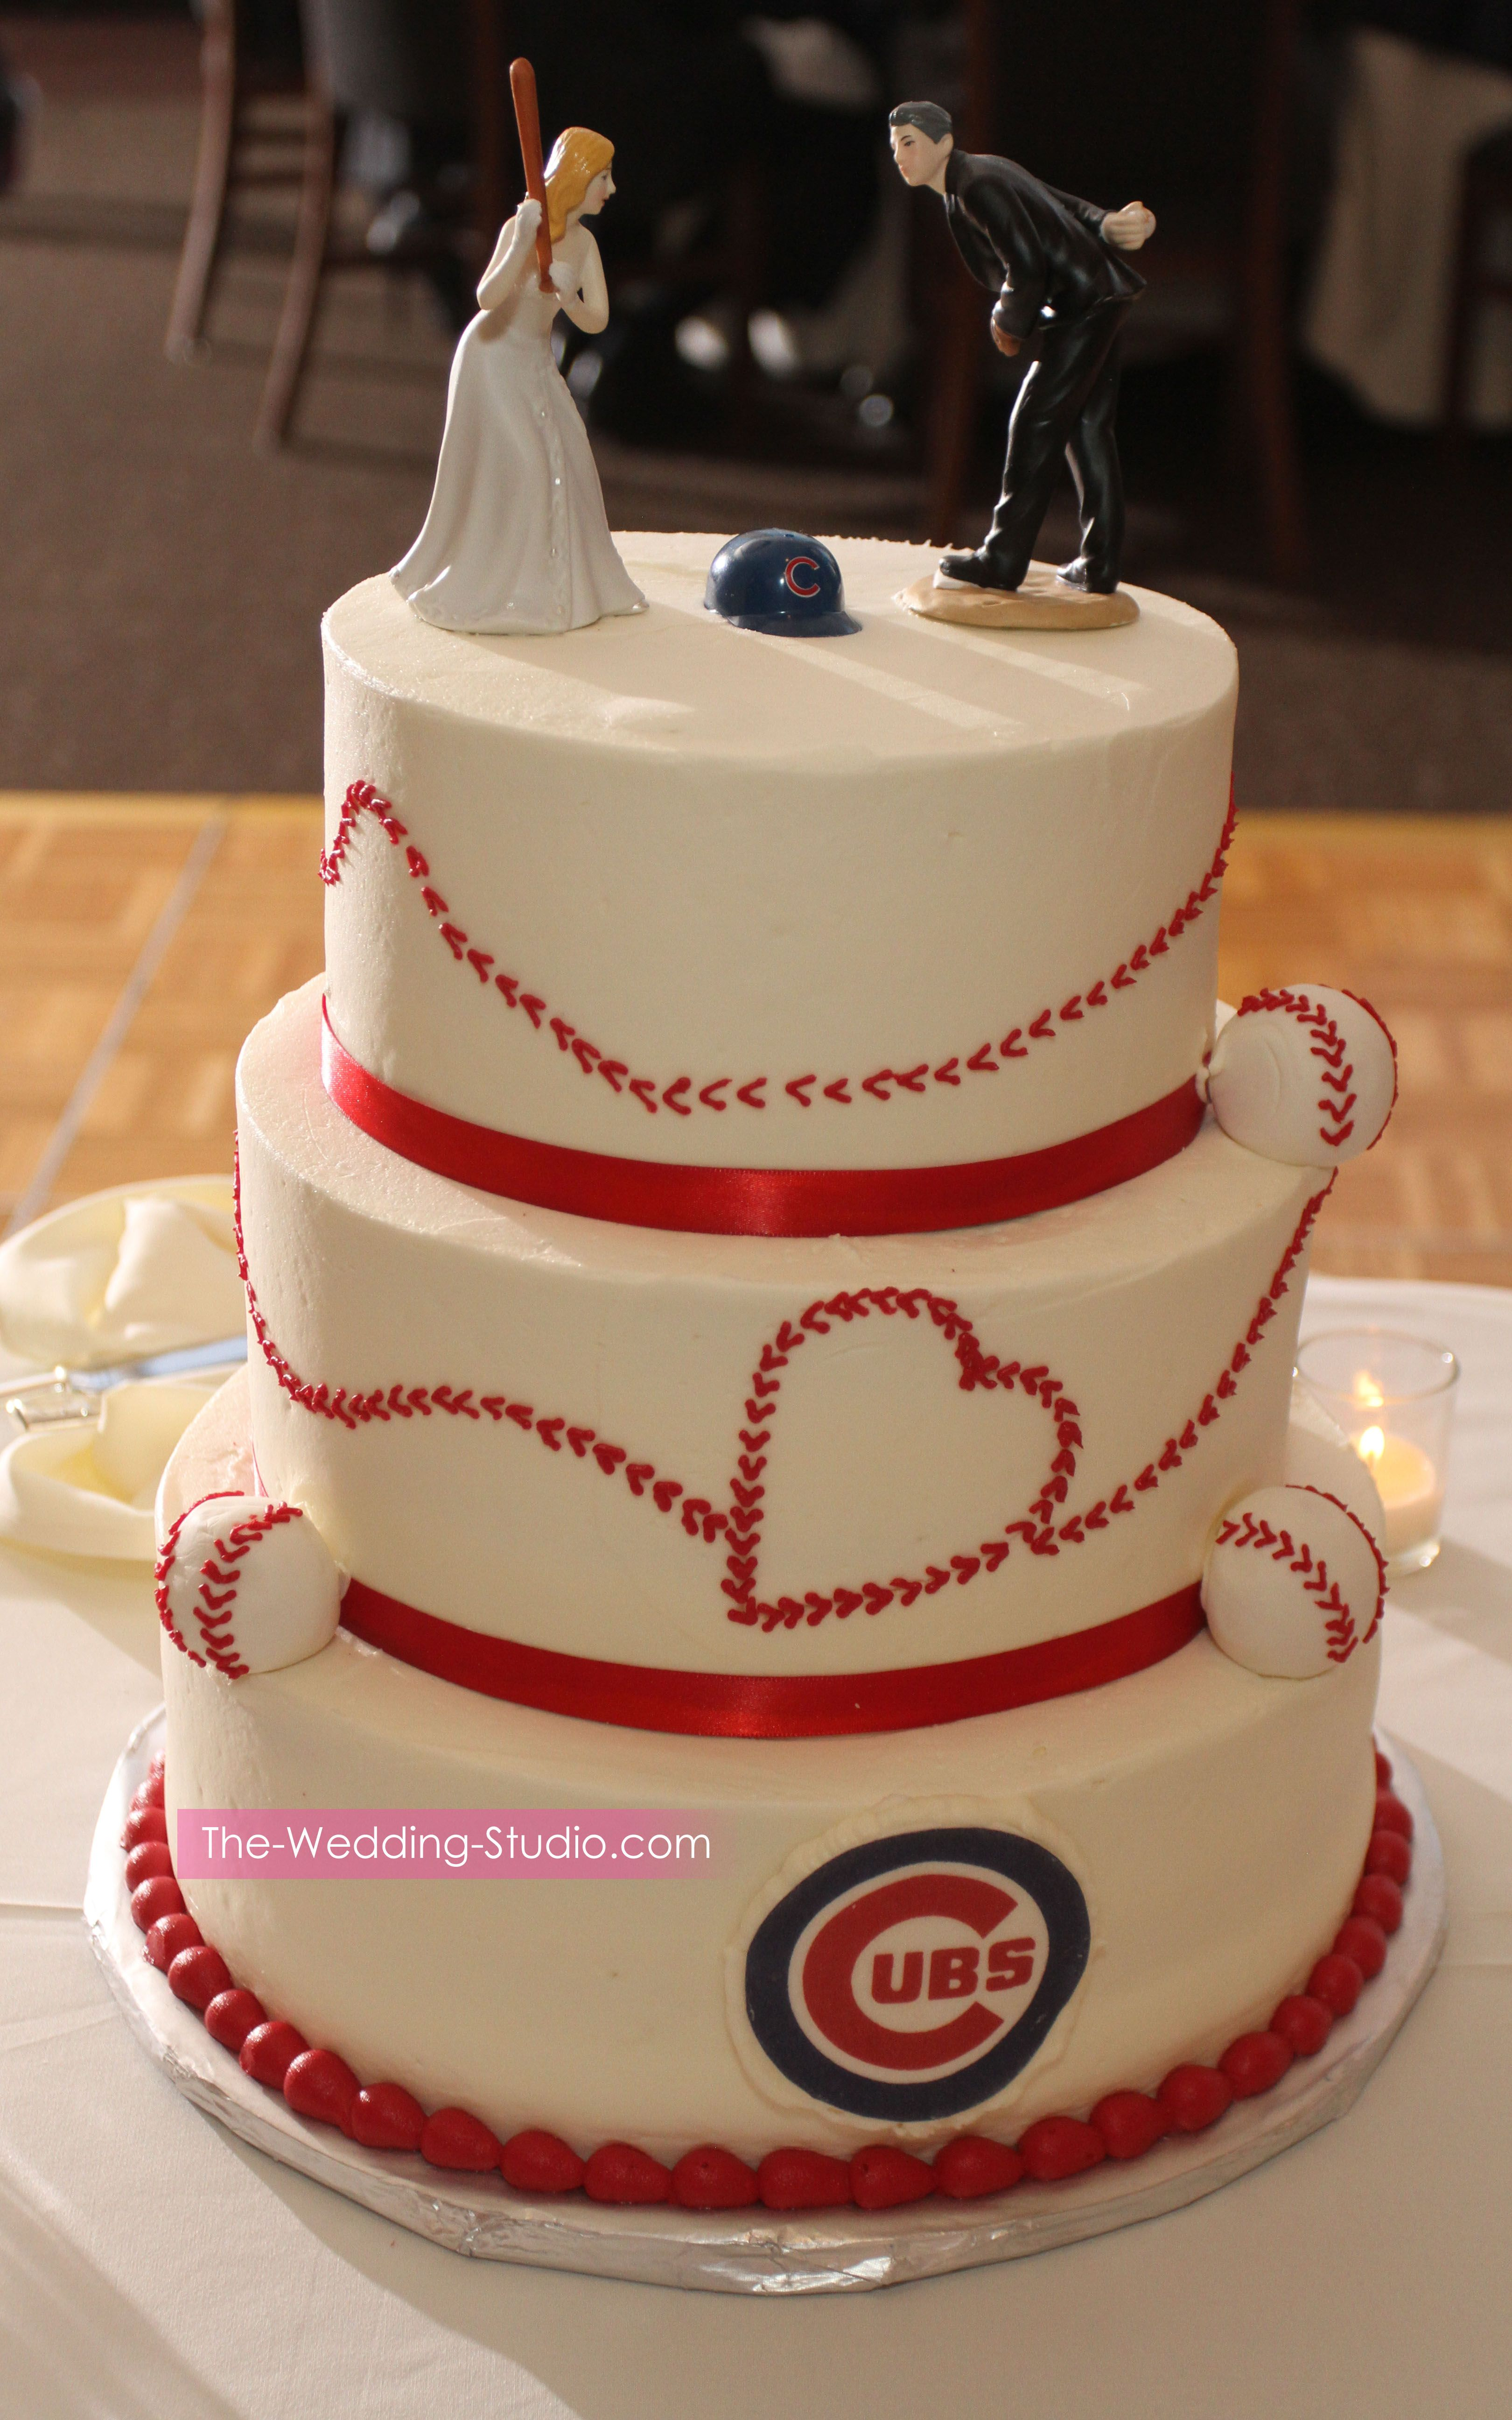 wedding cakes in chicago illinois chicago cub s themed wedding cake photographed by the 24602